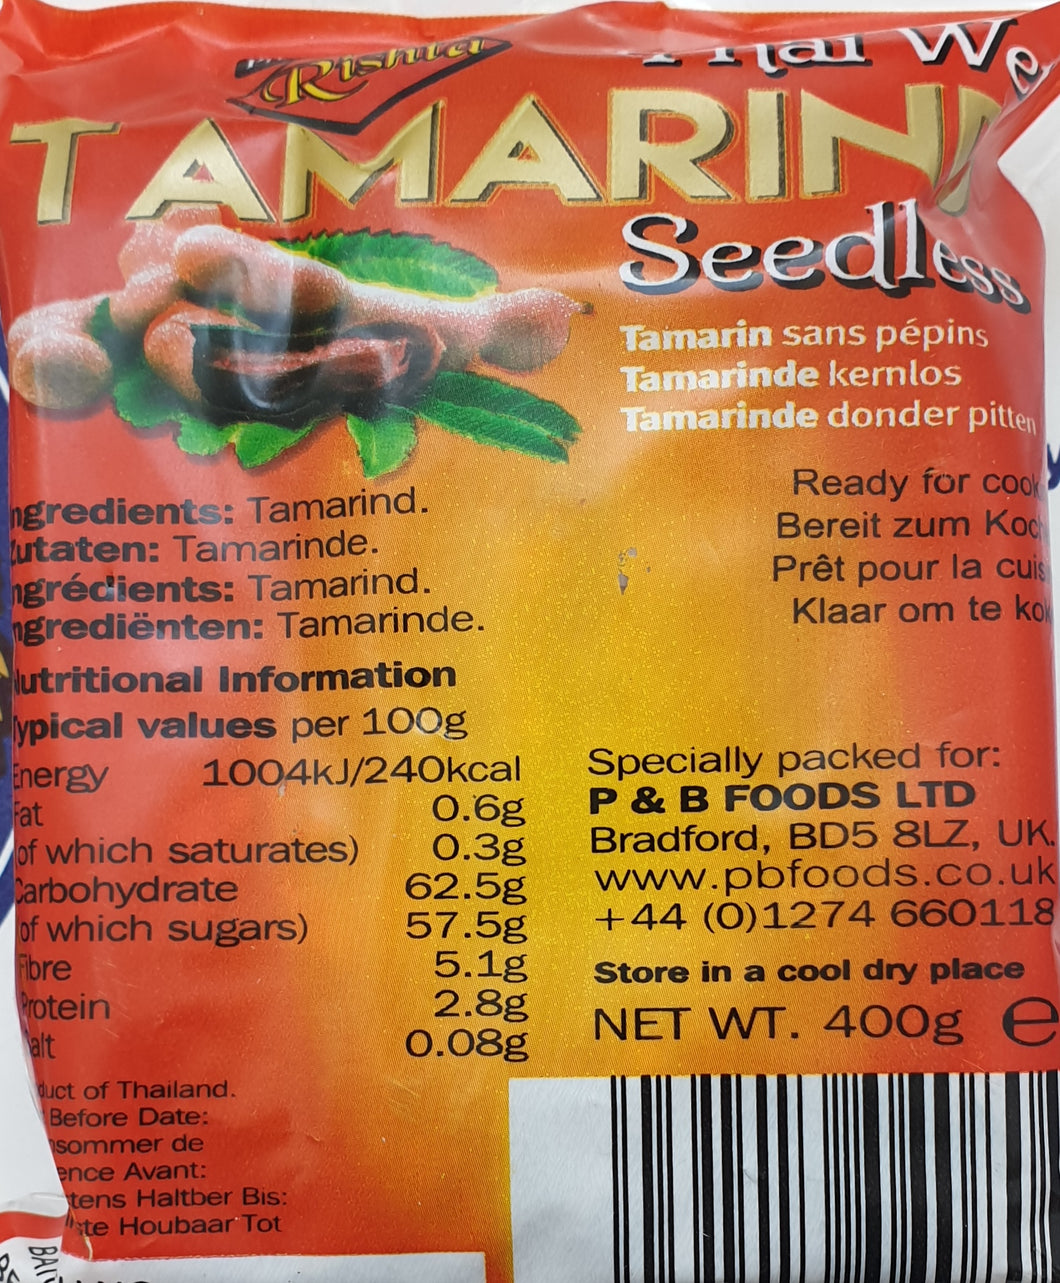 Rishta  Wet Tamarind Seedless IMLI 400g